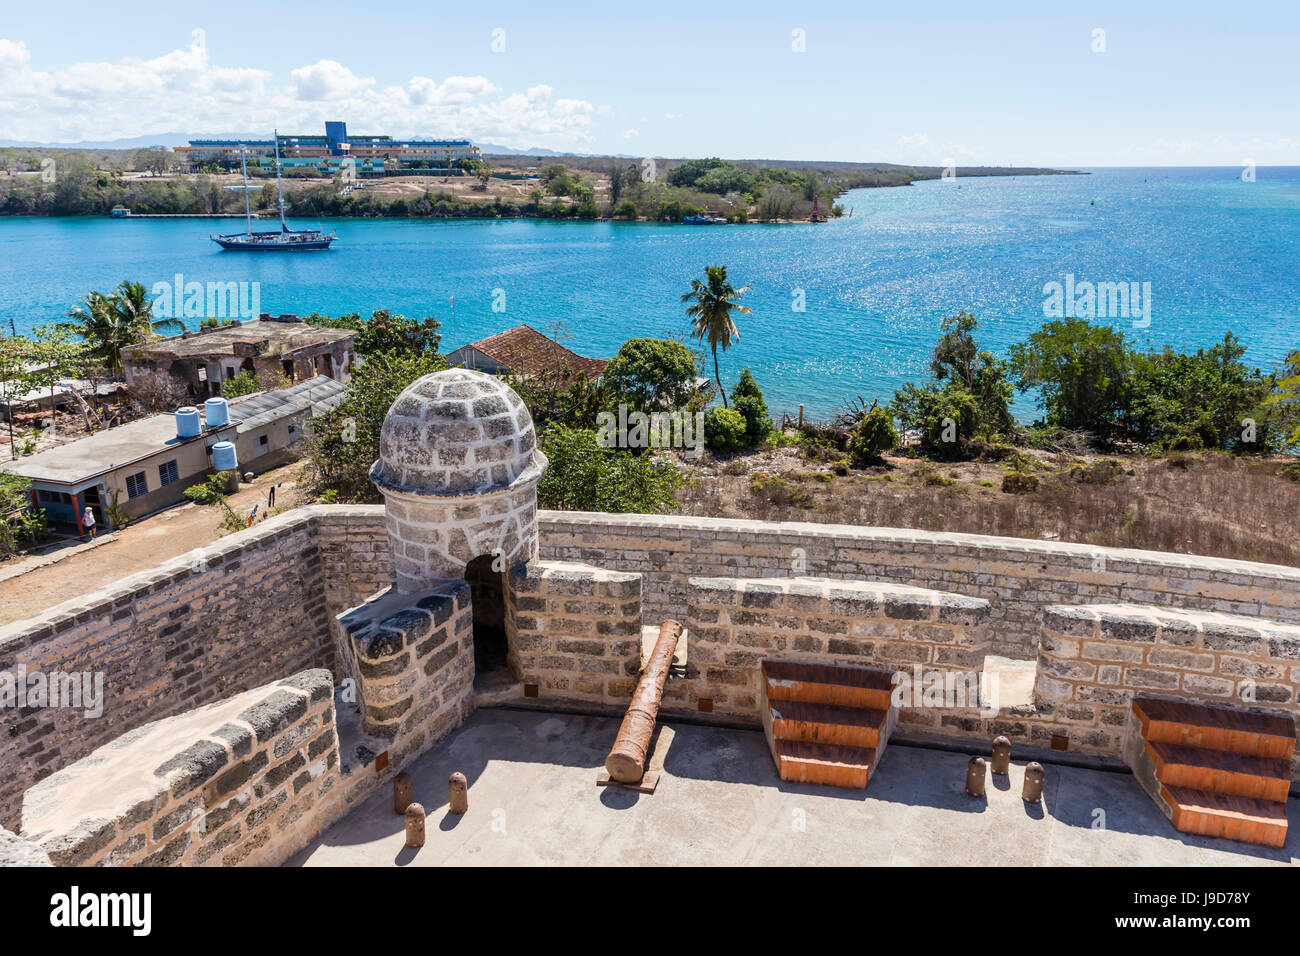 The Castillo de Jagua fort, erected in 1742 by King Philip V of Spain, near Cienfuegos, Cuba, West Indies, Caribbean - Stock Image